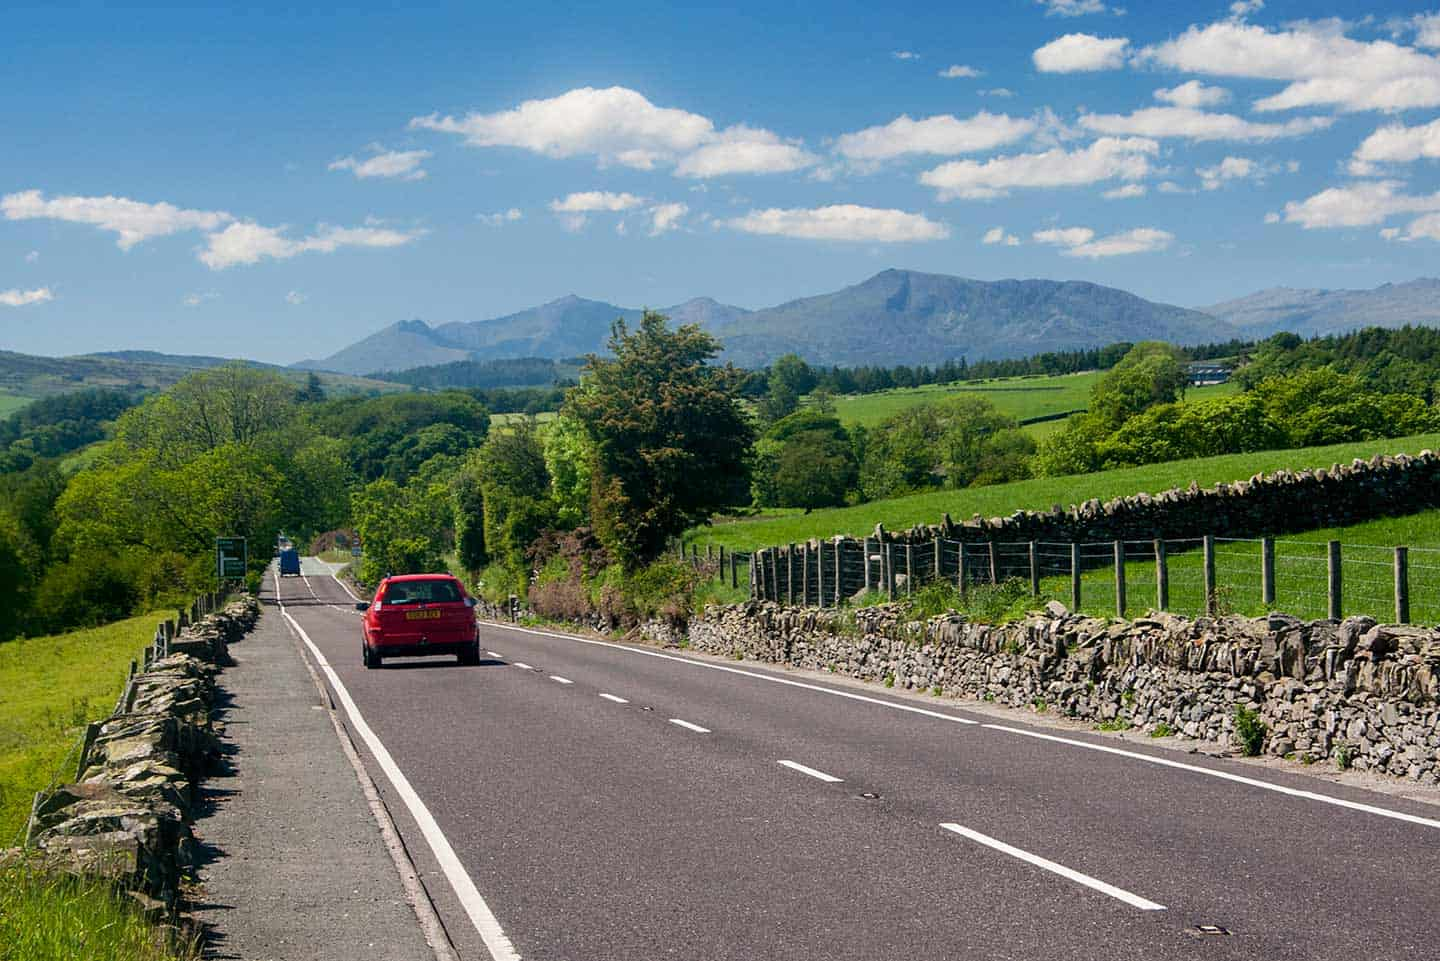 Image of the A5 road on the approach to Snowdonia